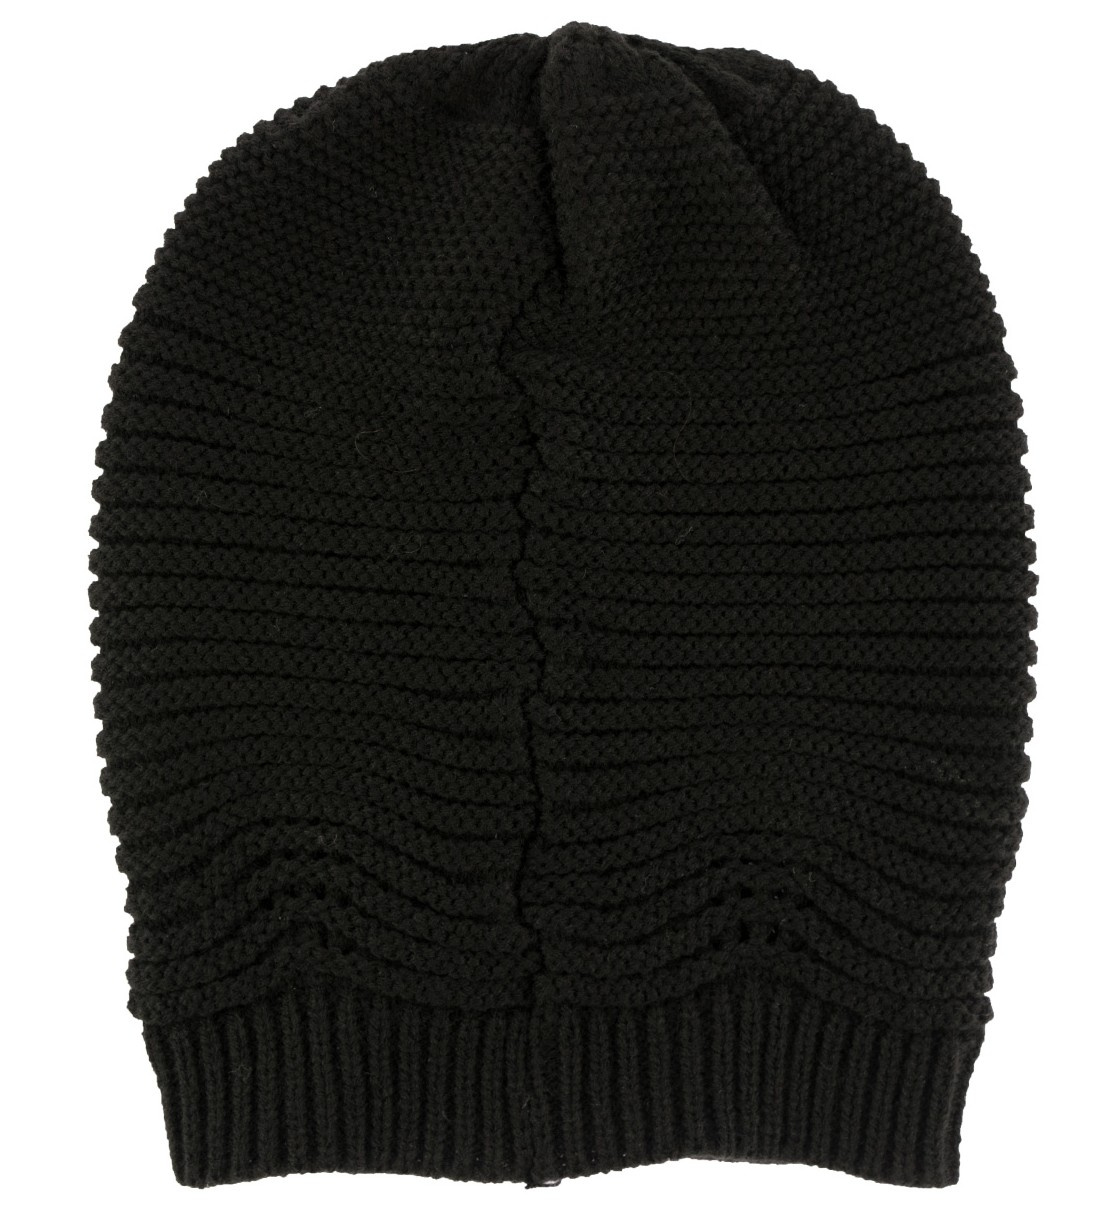 Body Action SLOUNCHY BEANIE HAT